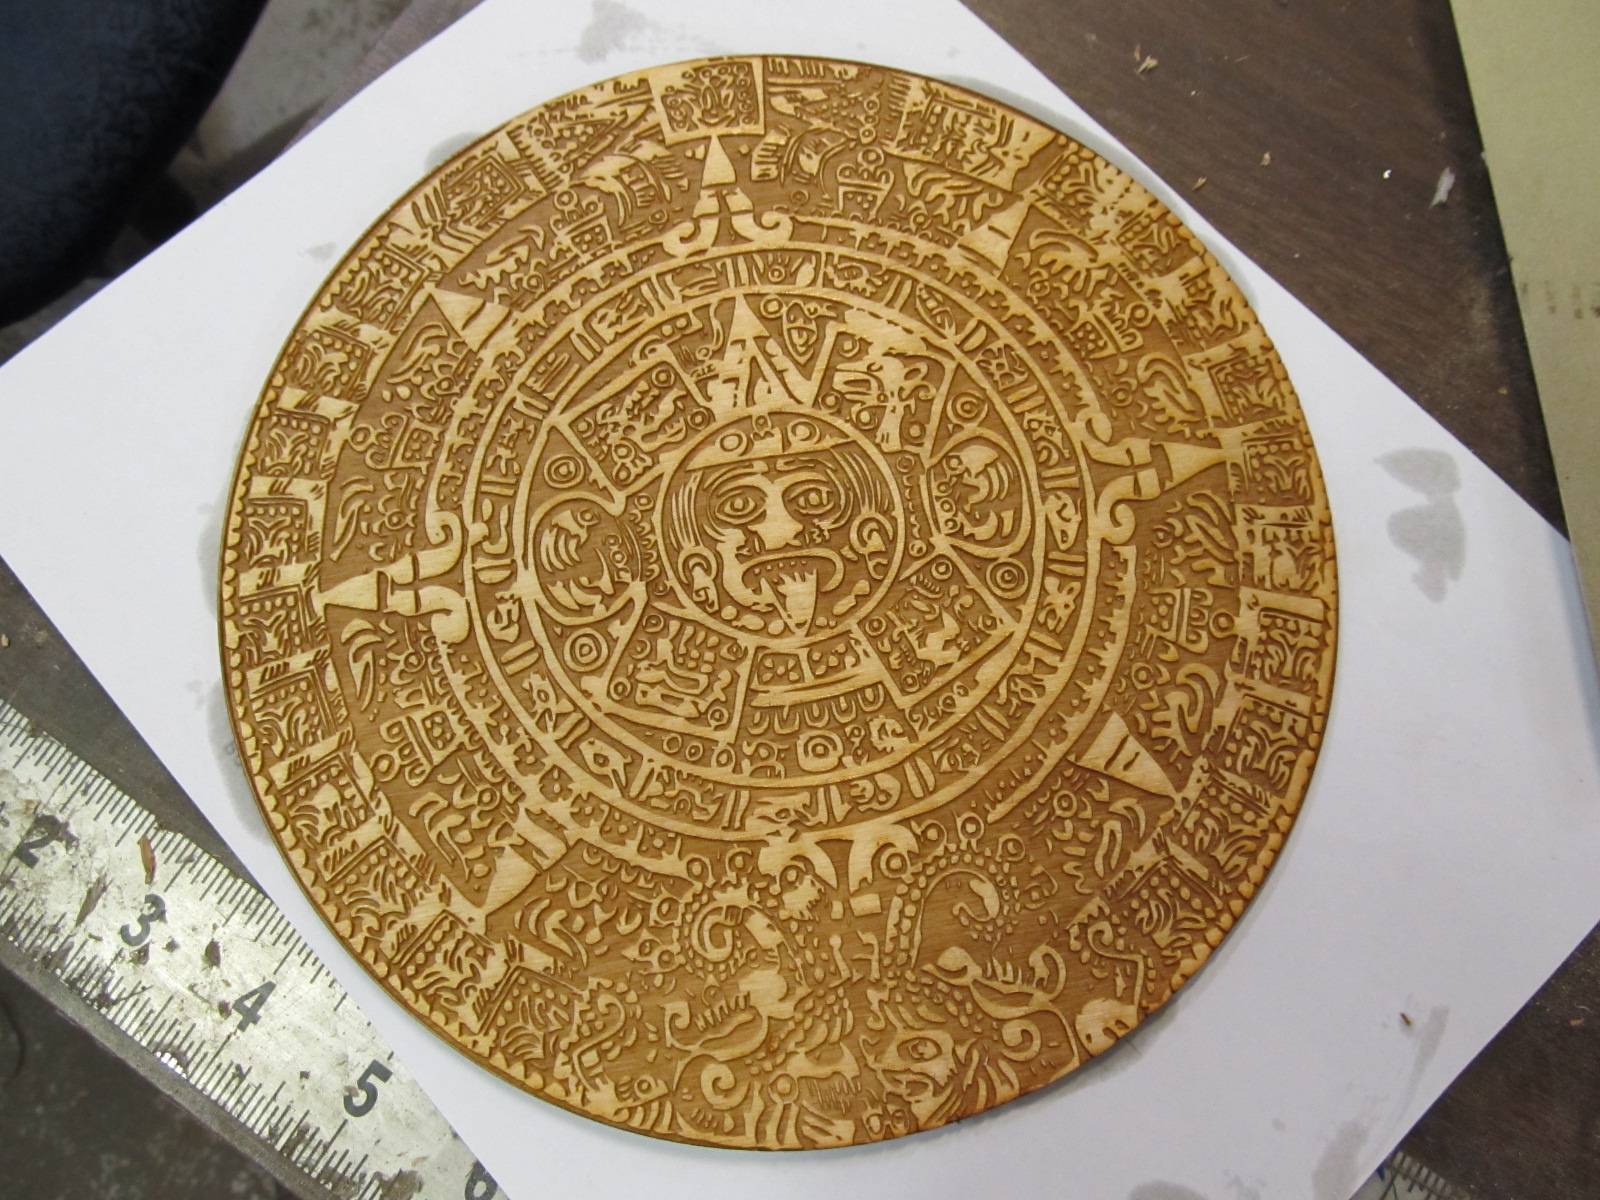 A laser cut image of the Aztec Sun Calendar